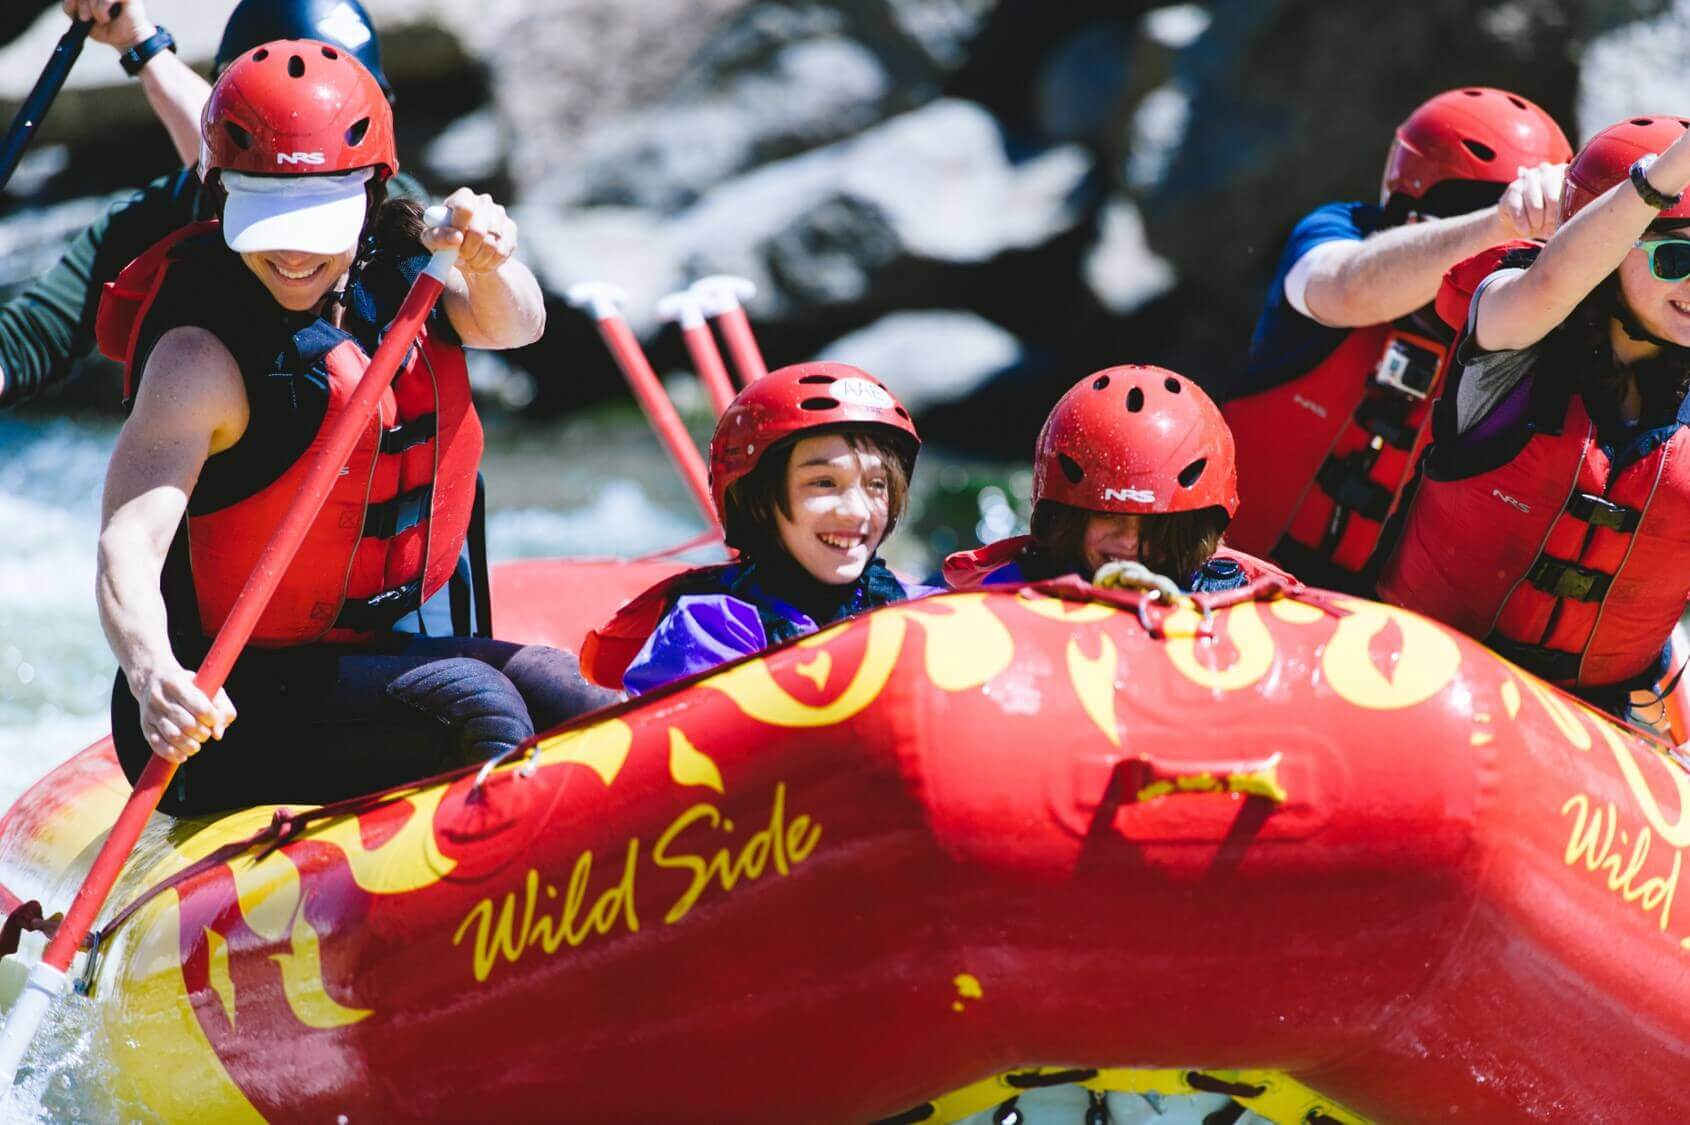 outdoor activities with kids white water rafting